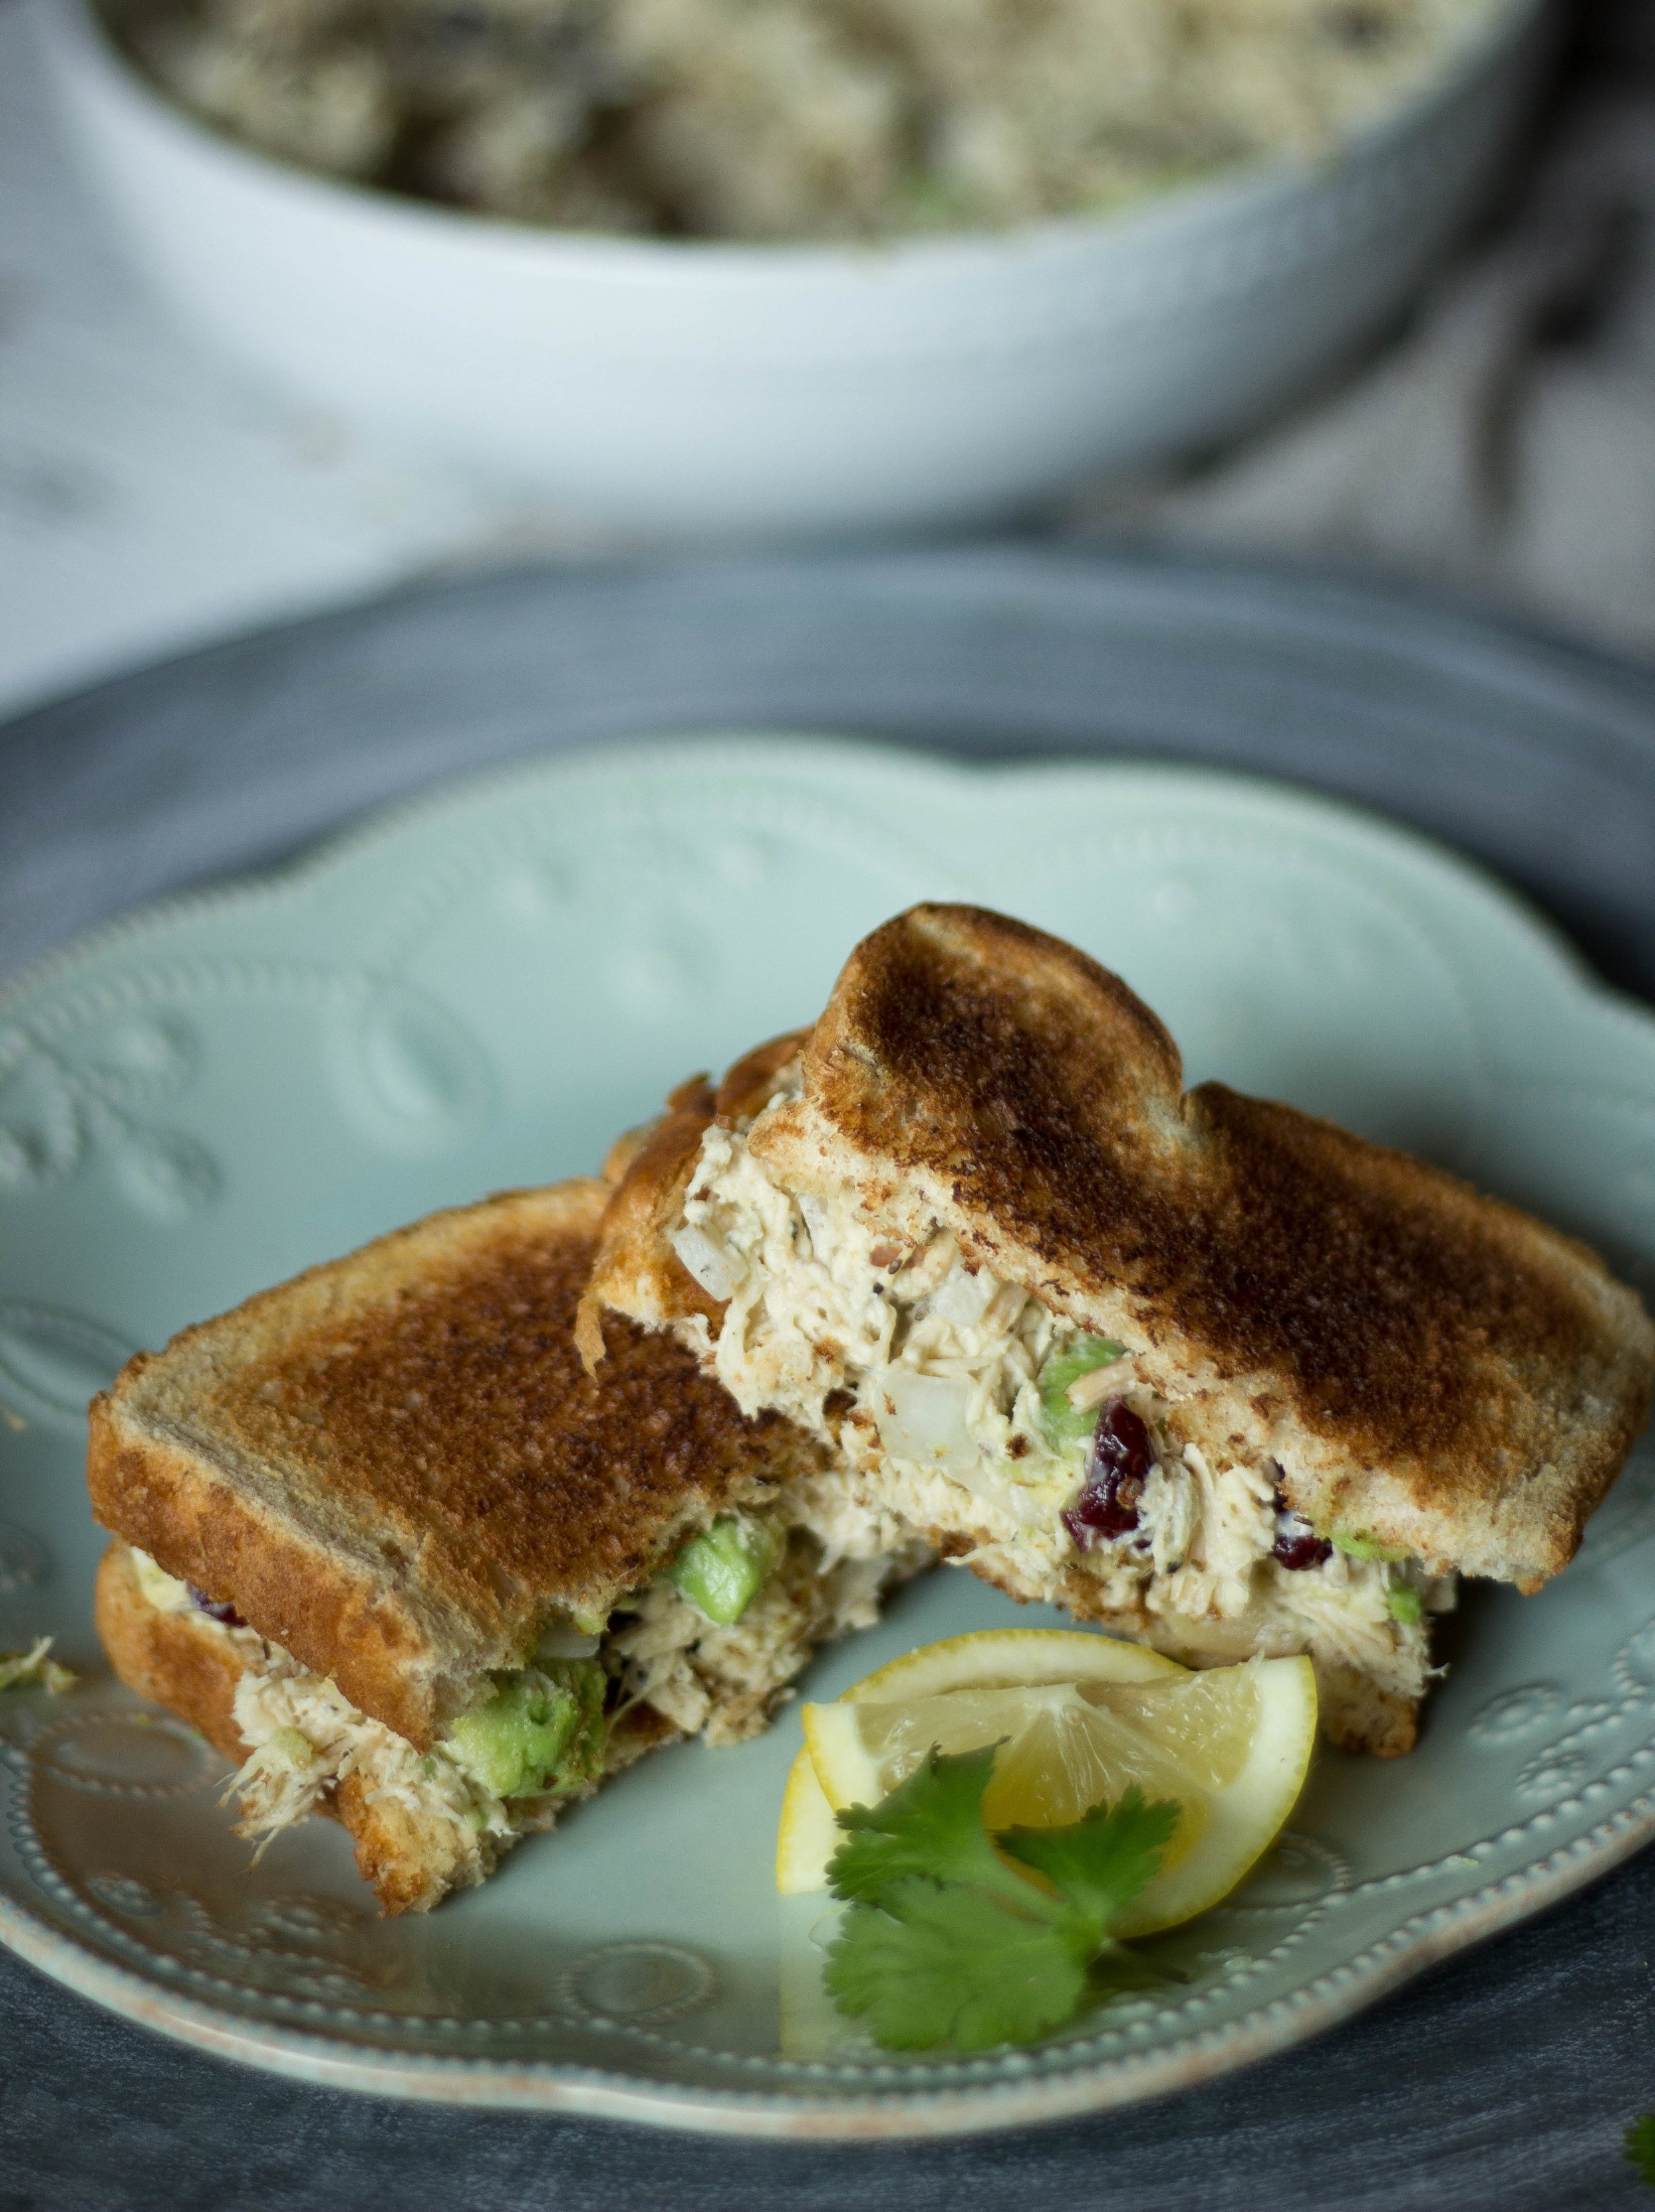 chicken salad8 (1 of 1).jpg